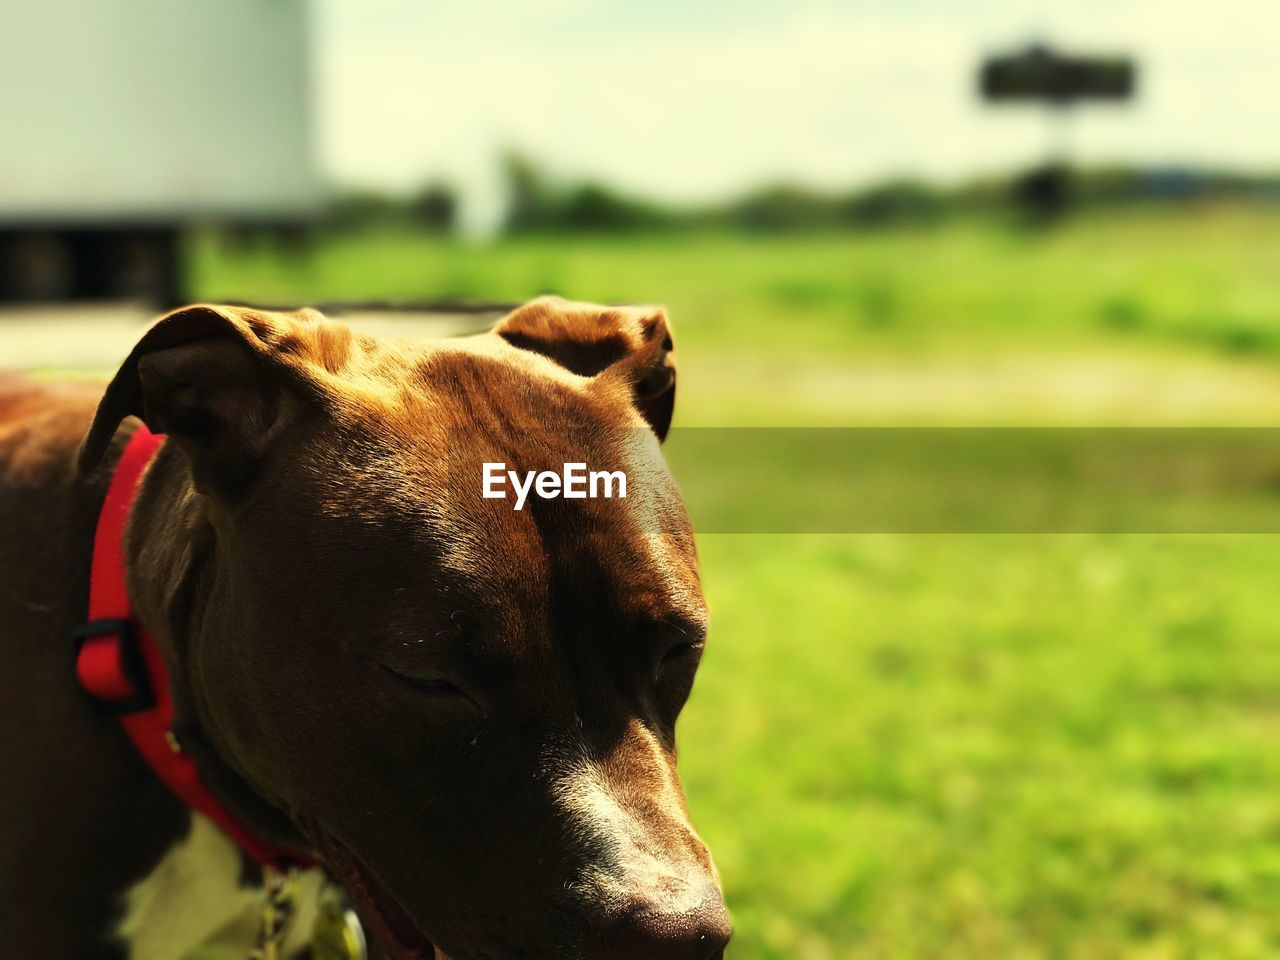 mammal, domestic animals, domestic, pets, one animal, animal themes, animal, dog, canine, vertebrate, focus on foreground, day, looking, animal body part, looking away, field, no people, nature, outdoors, land, animal head, animal mouth